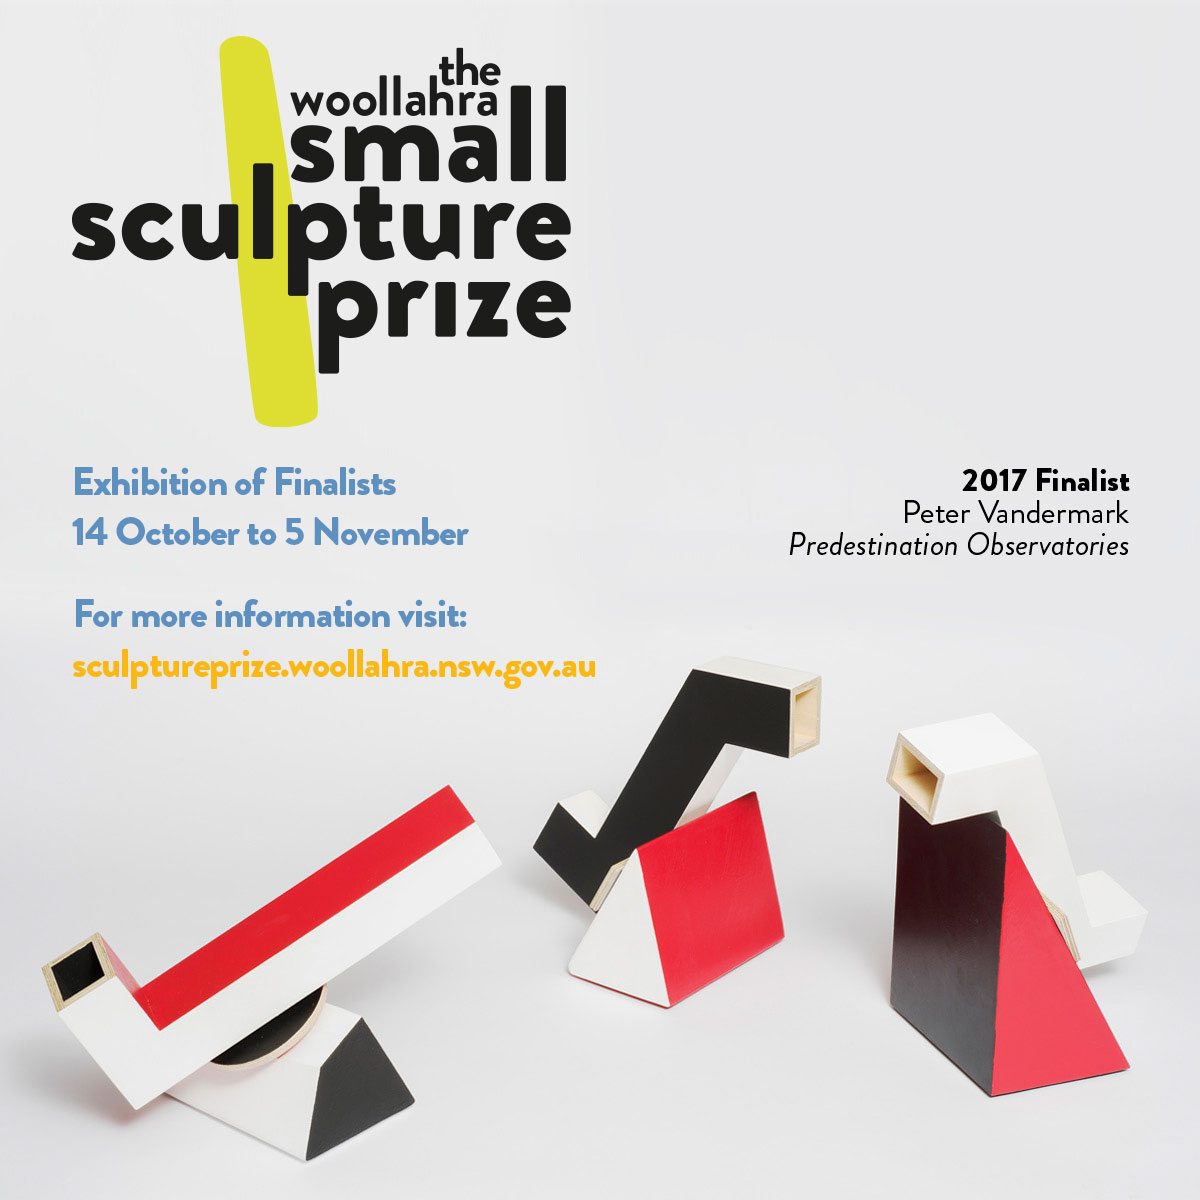 Executive Privilege By Sydney Falk: Woollahra Small Sculpture Prize Announces 2017 Finalists